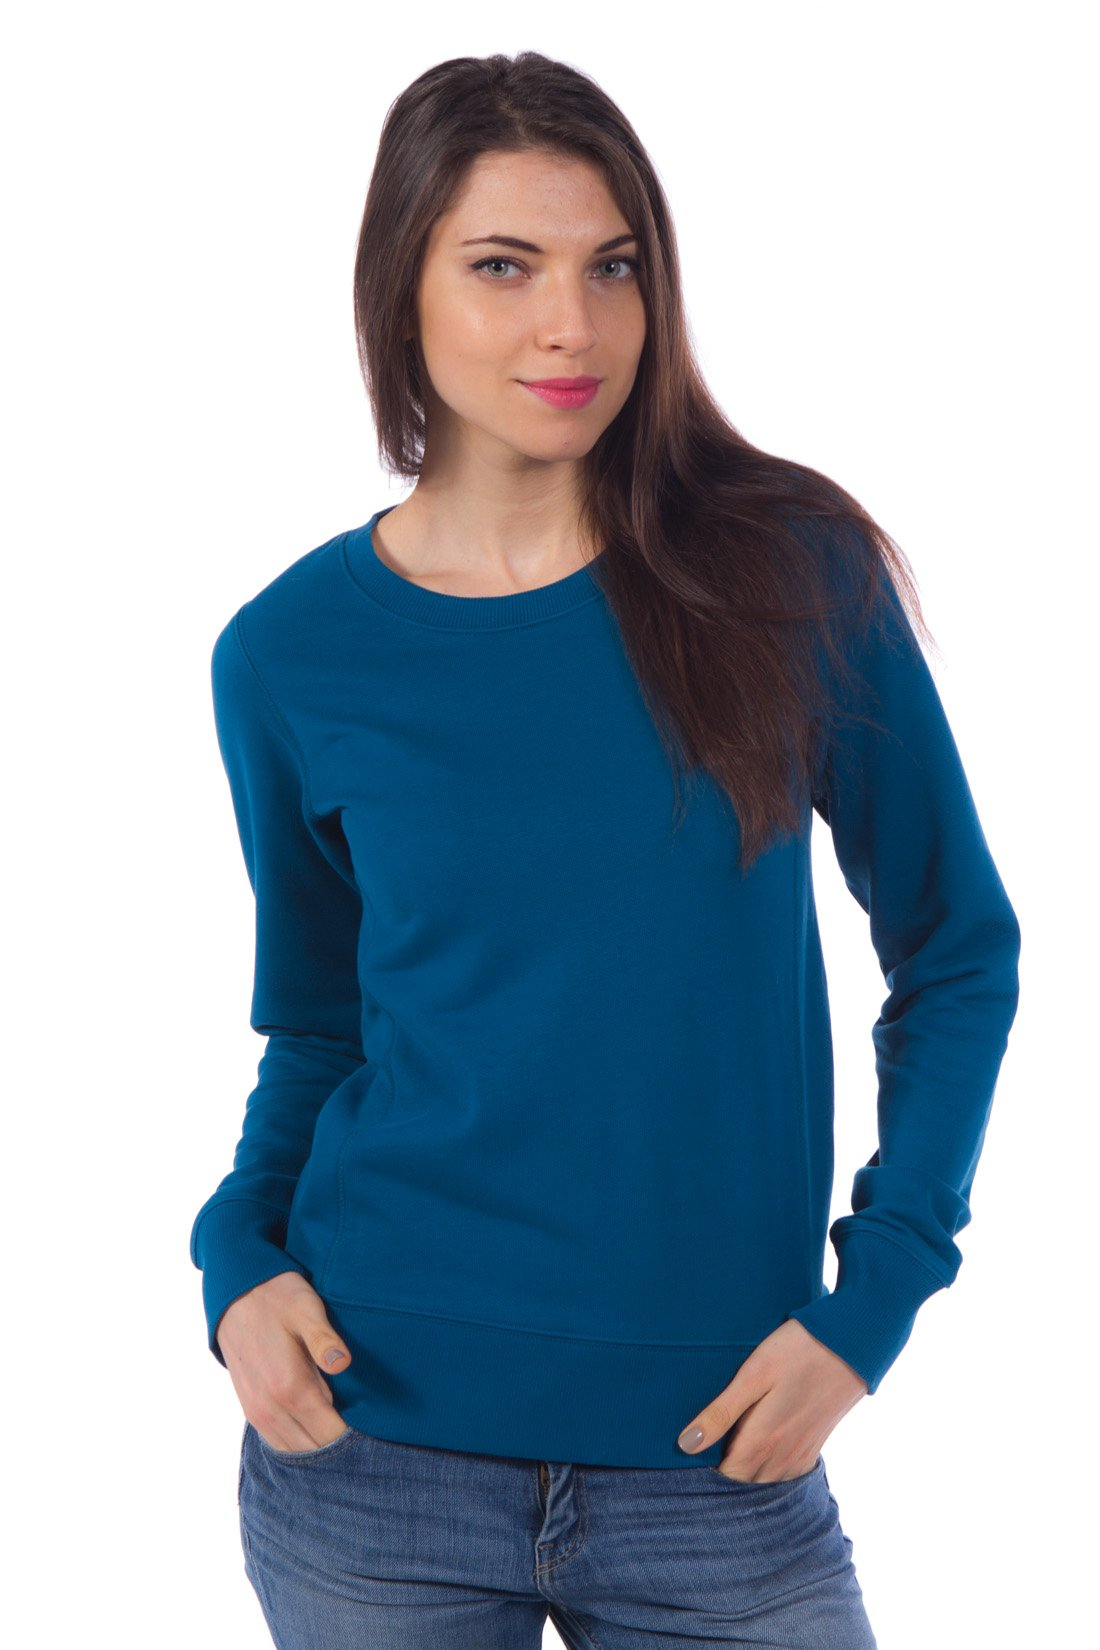 Ably Apparel Roni (2X Large, Moroccan Blue)